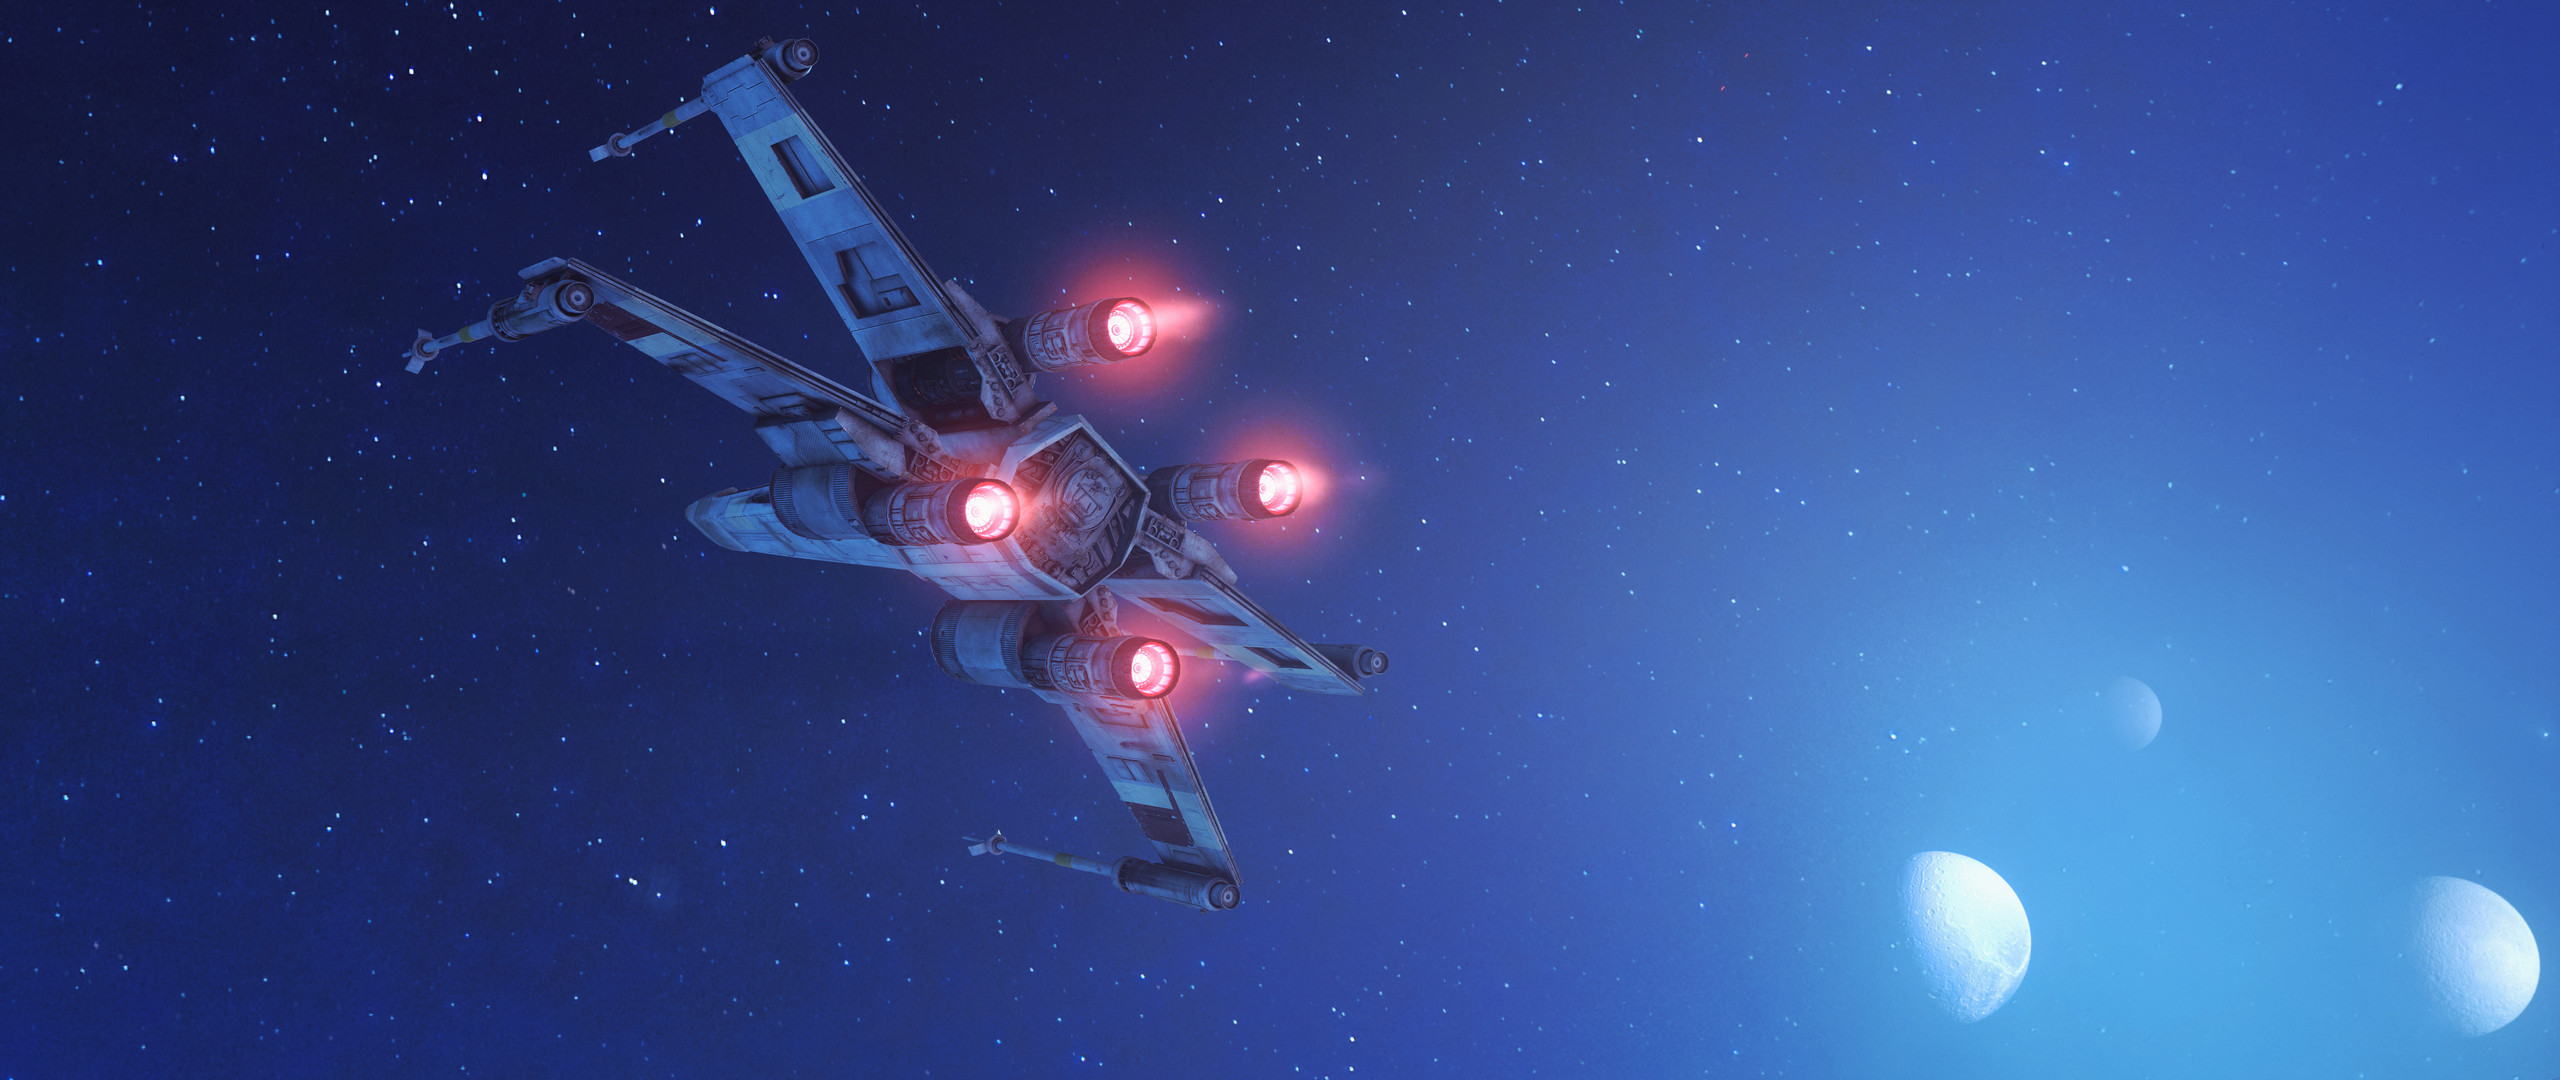 2560x1080 Video Game - Star Wars Battlefront (2015) X-Wing Wallpaper